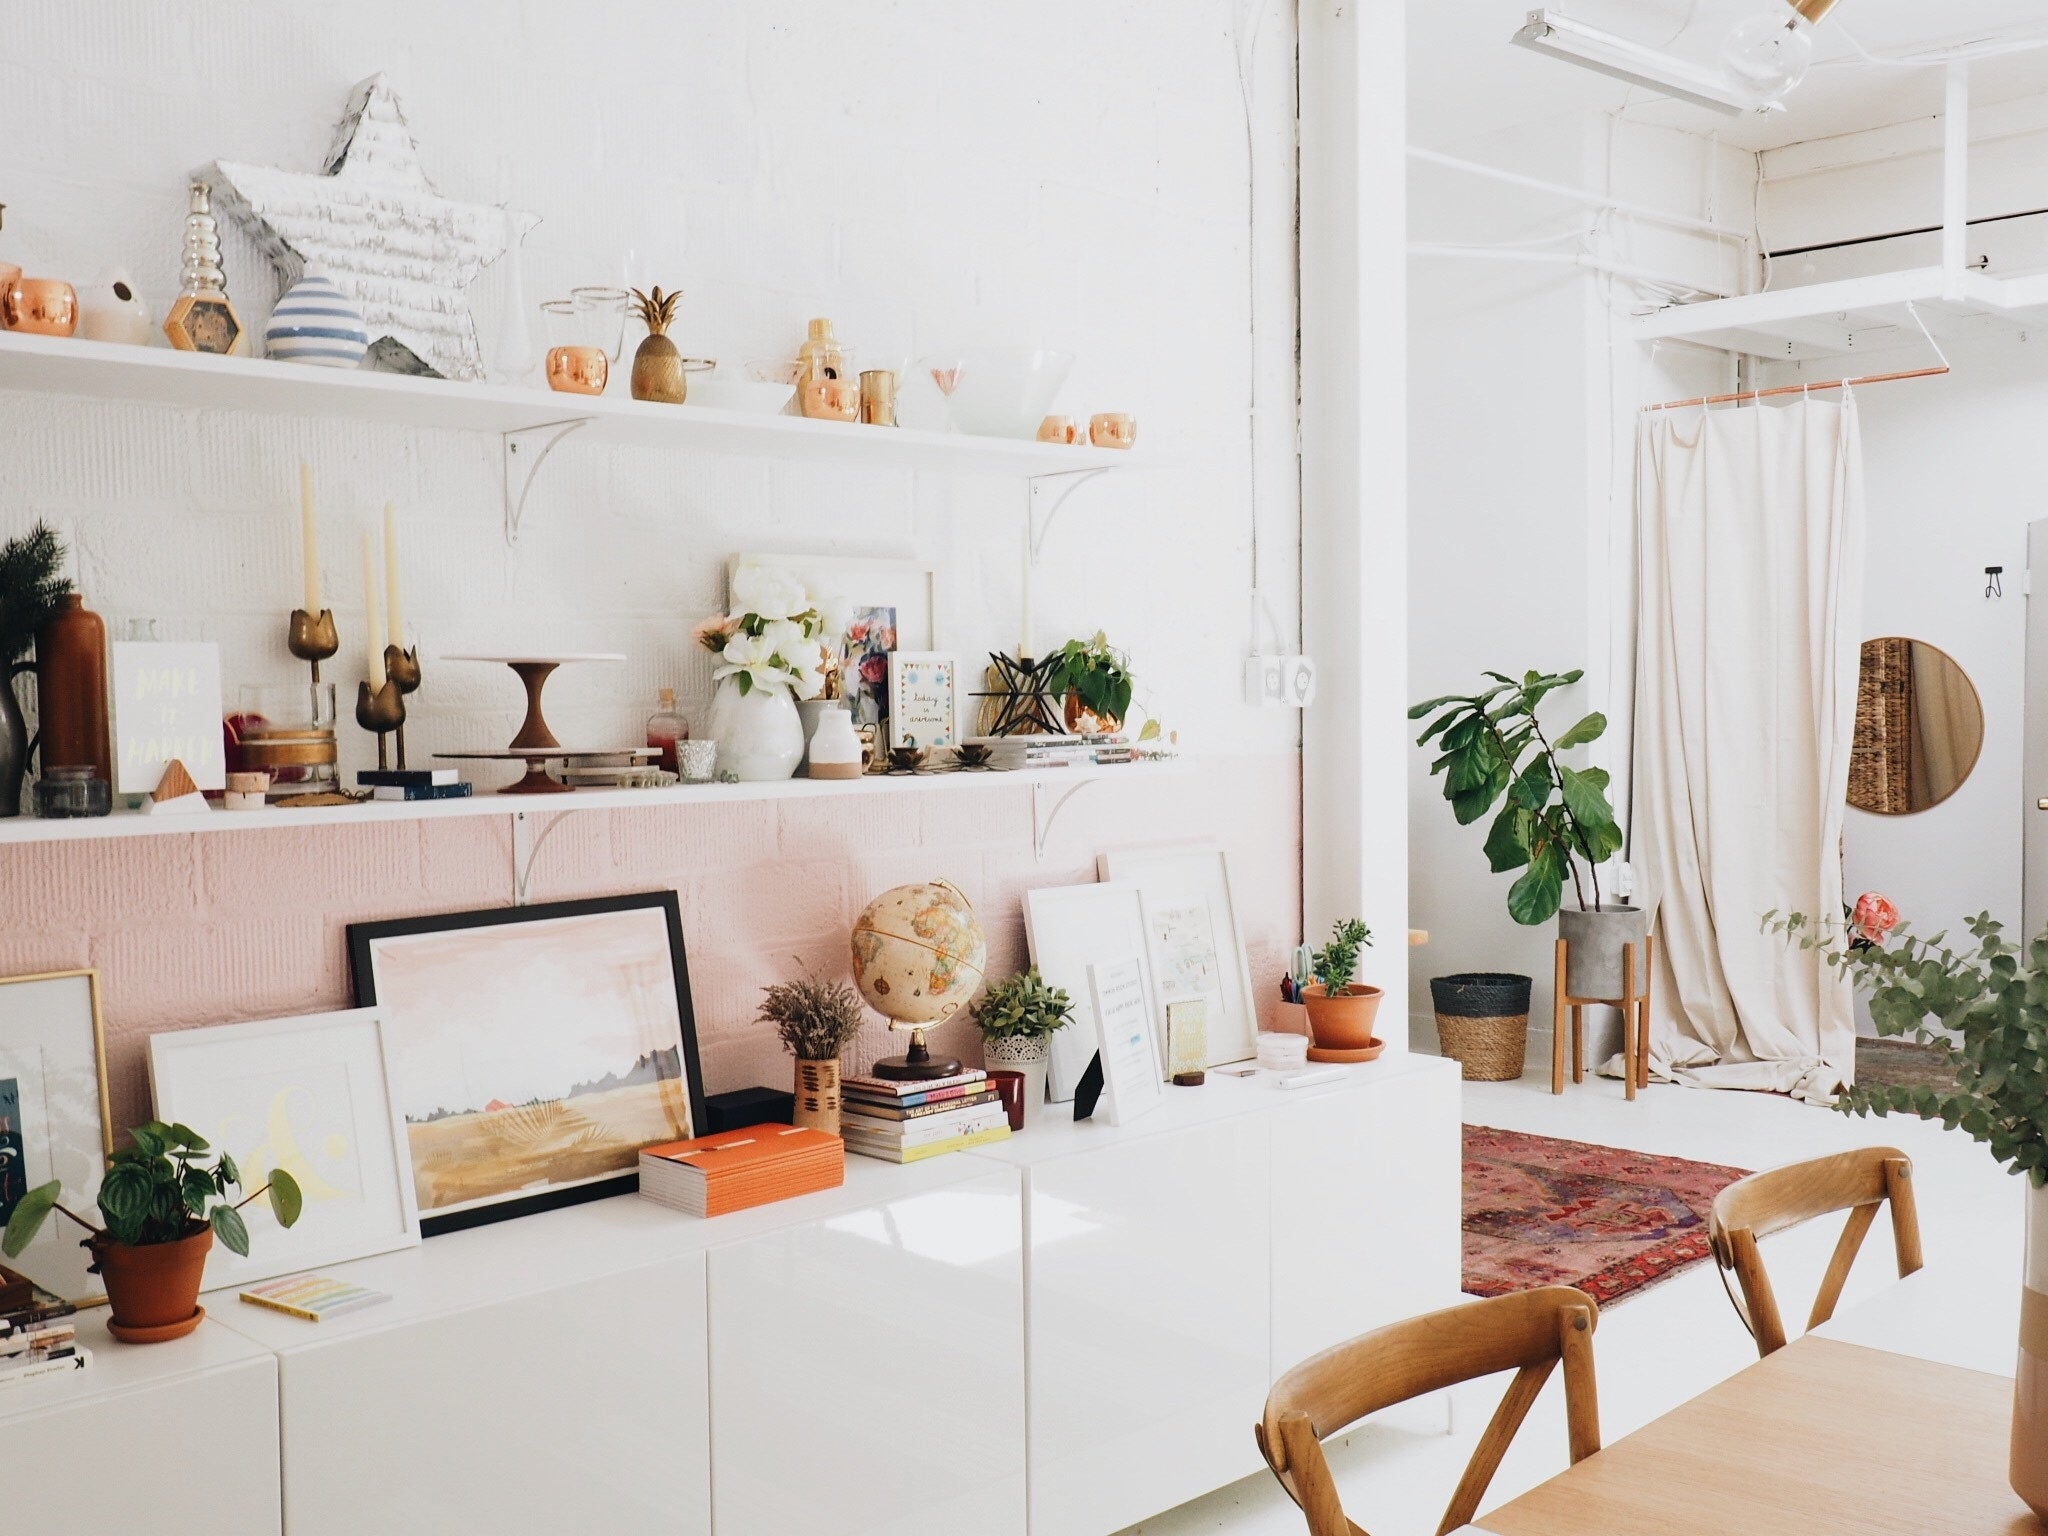 3 Basics to a Mindful Room: Feng Shui